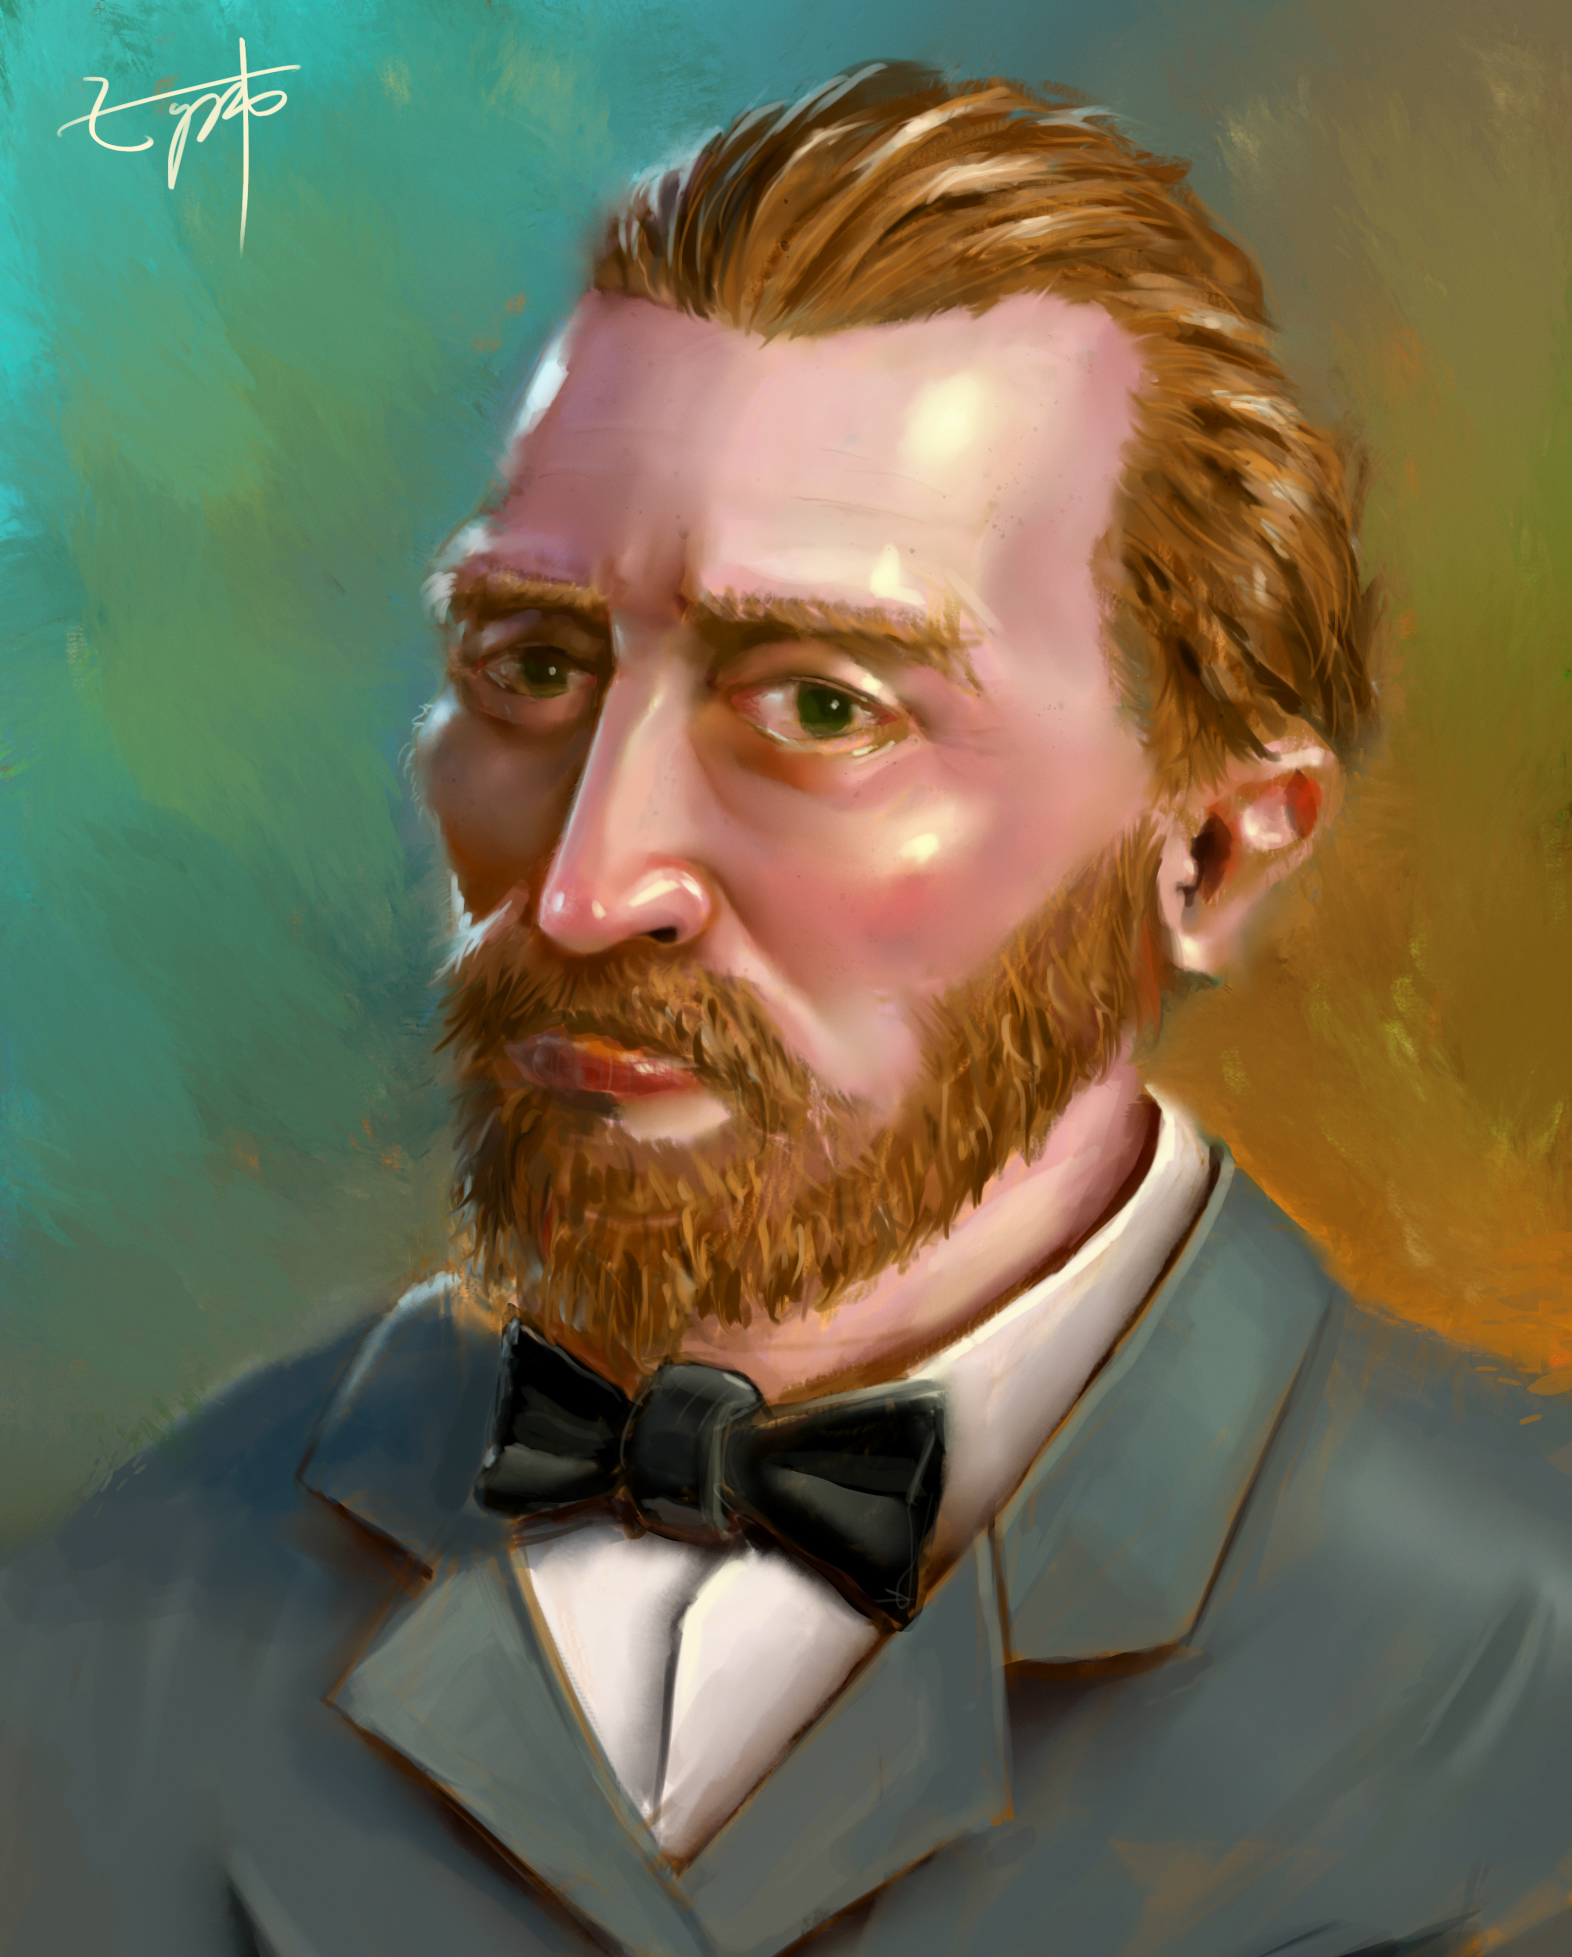 Digital Portrait:Vincent Van Gogh - Portrait painting based on Van Gogh's stylized self portrait and black-and-white photo. Inspired by the animated movie Loving Vincent.